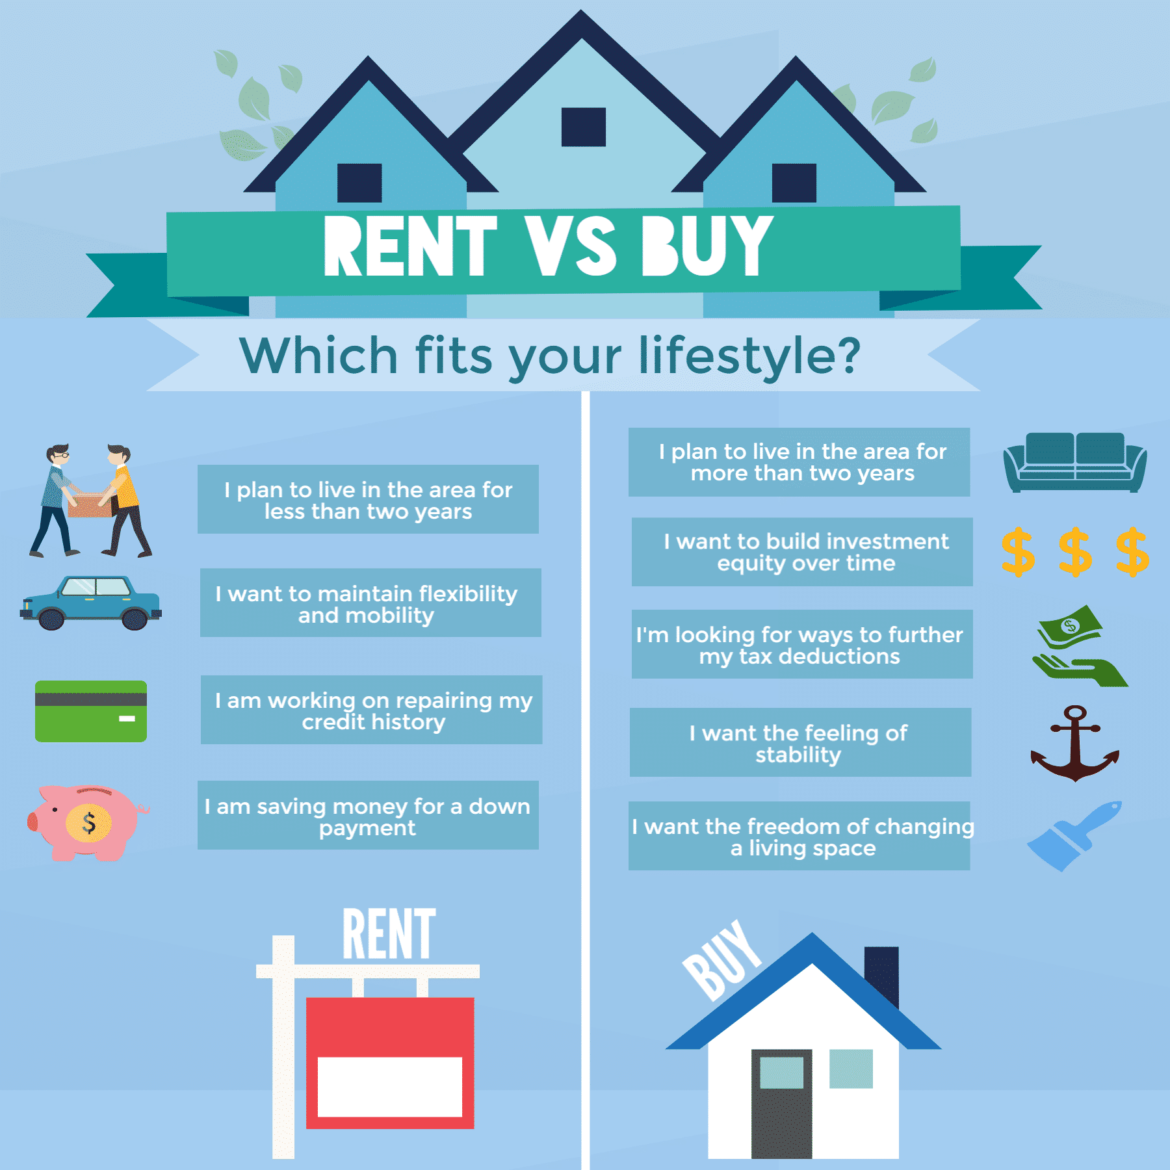 Buy: Renting Vs Buying A Home